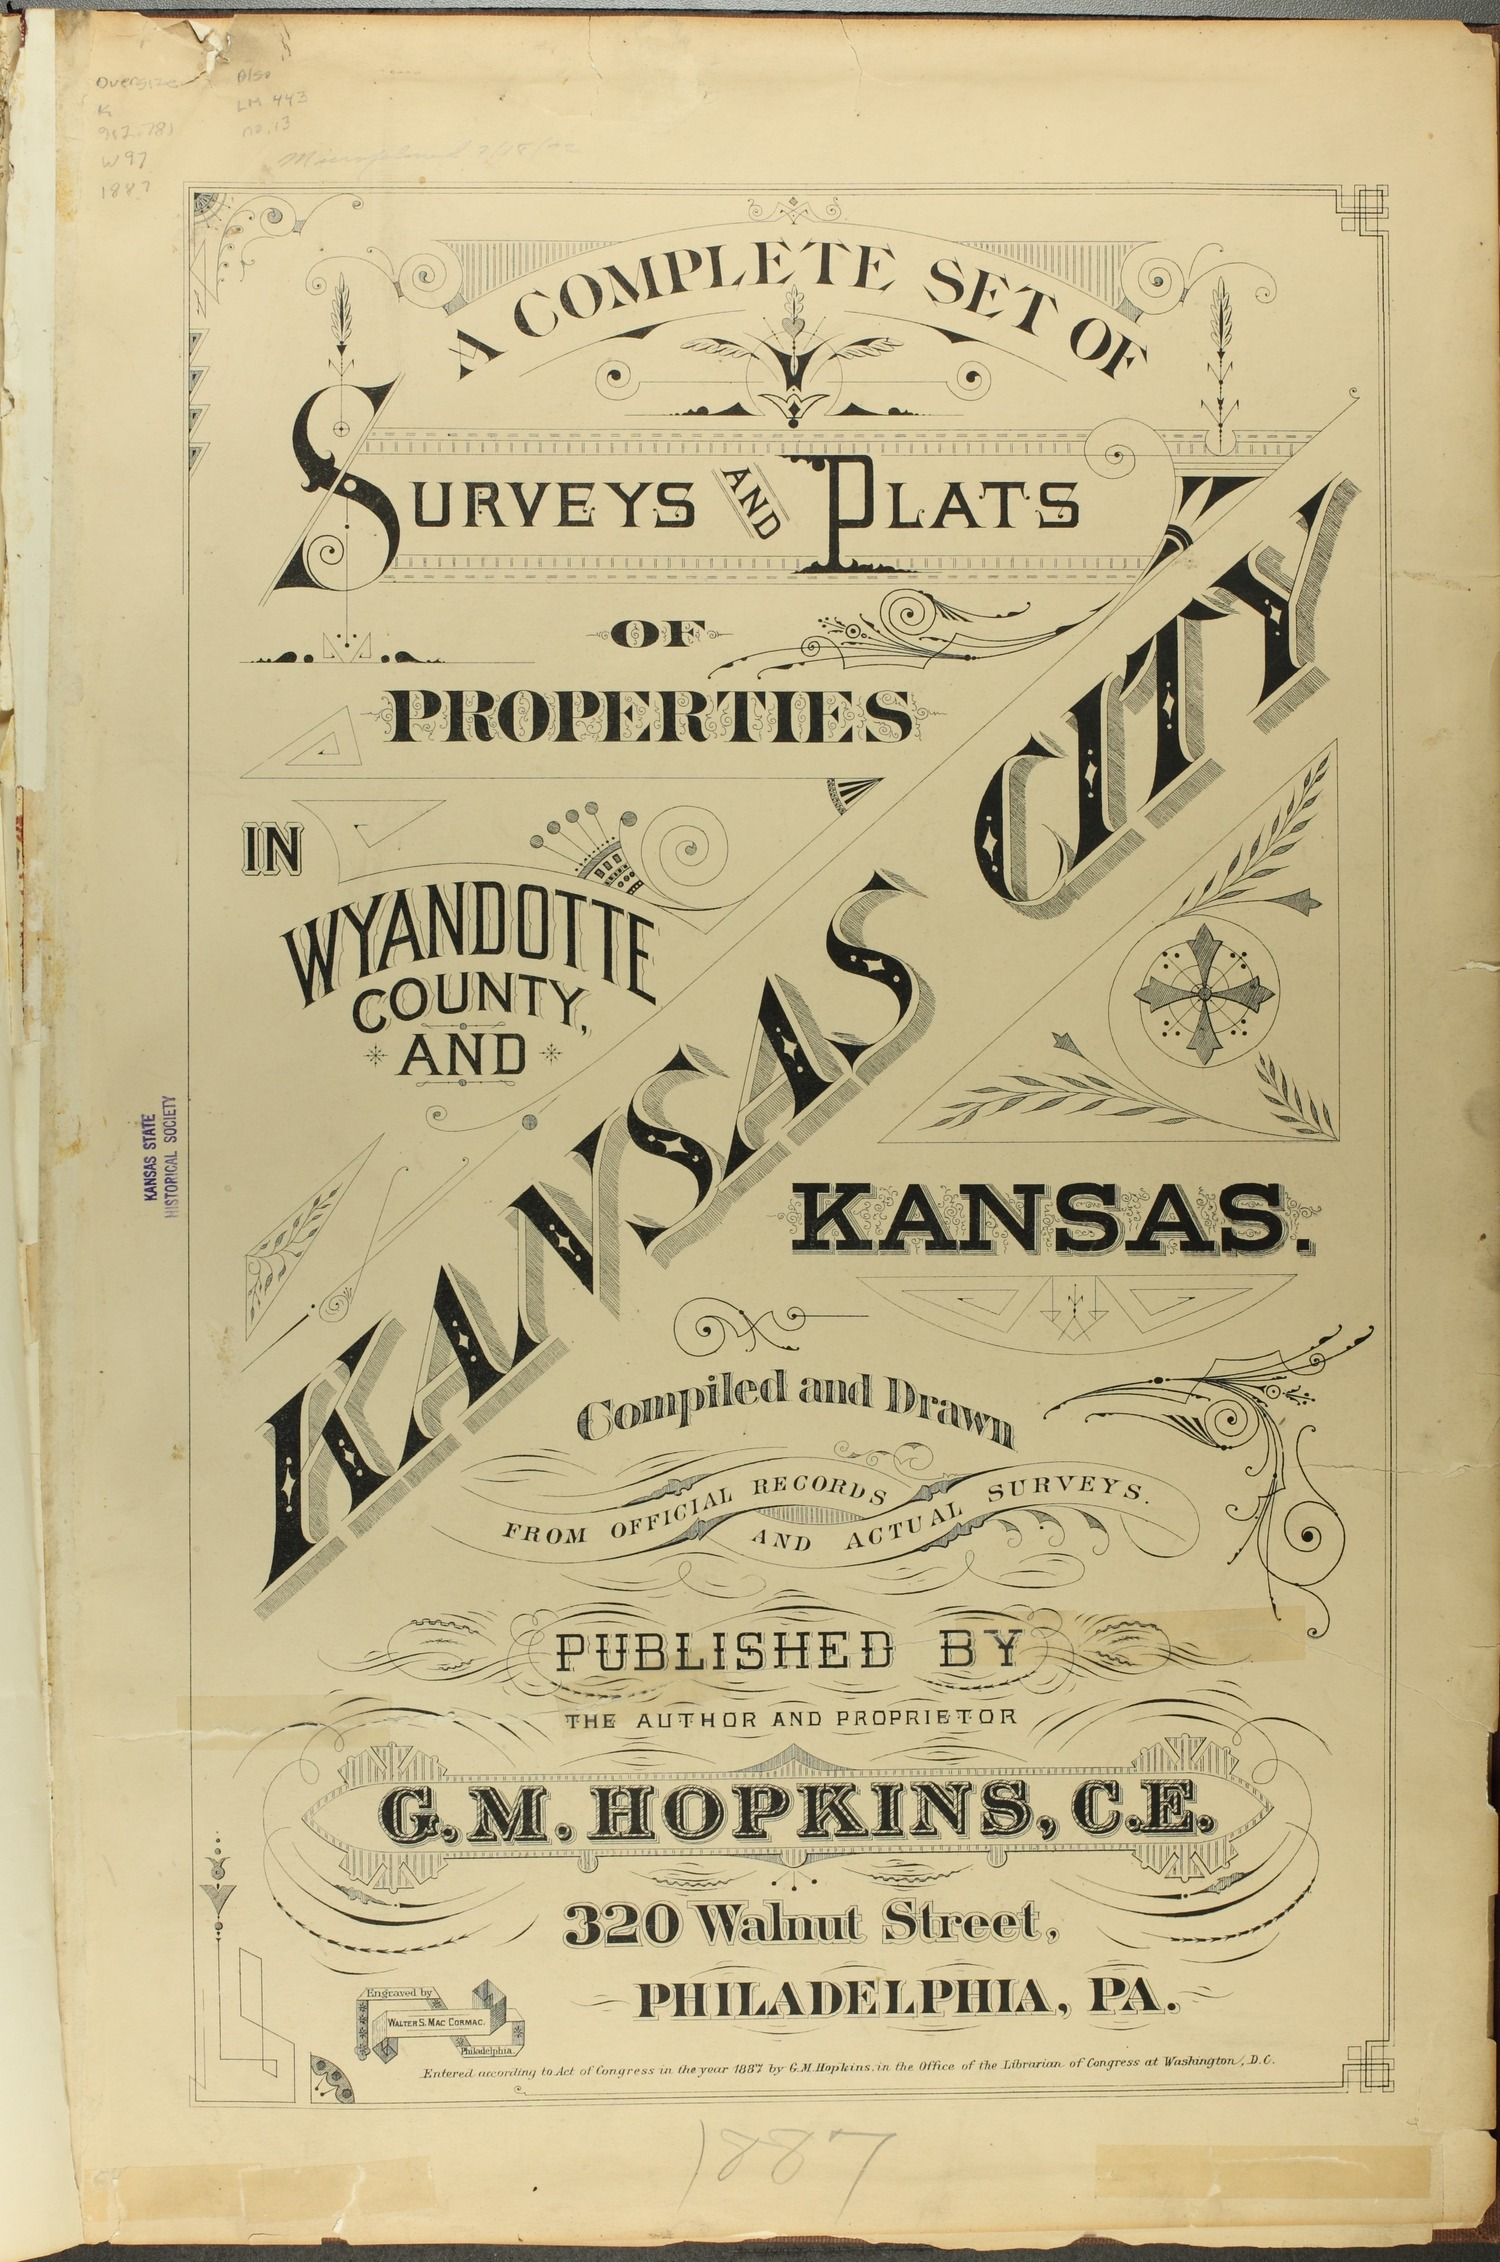 A complete set of surveys and plats or properties in Wyandotte County and Kansas City Kansas - Title Page